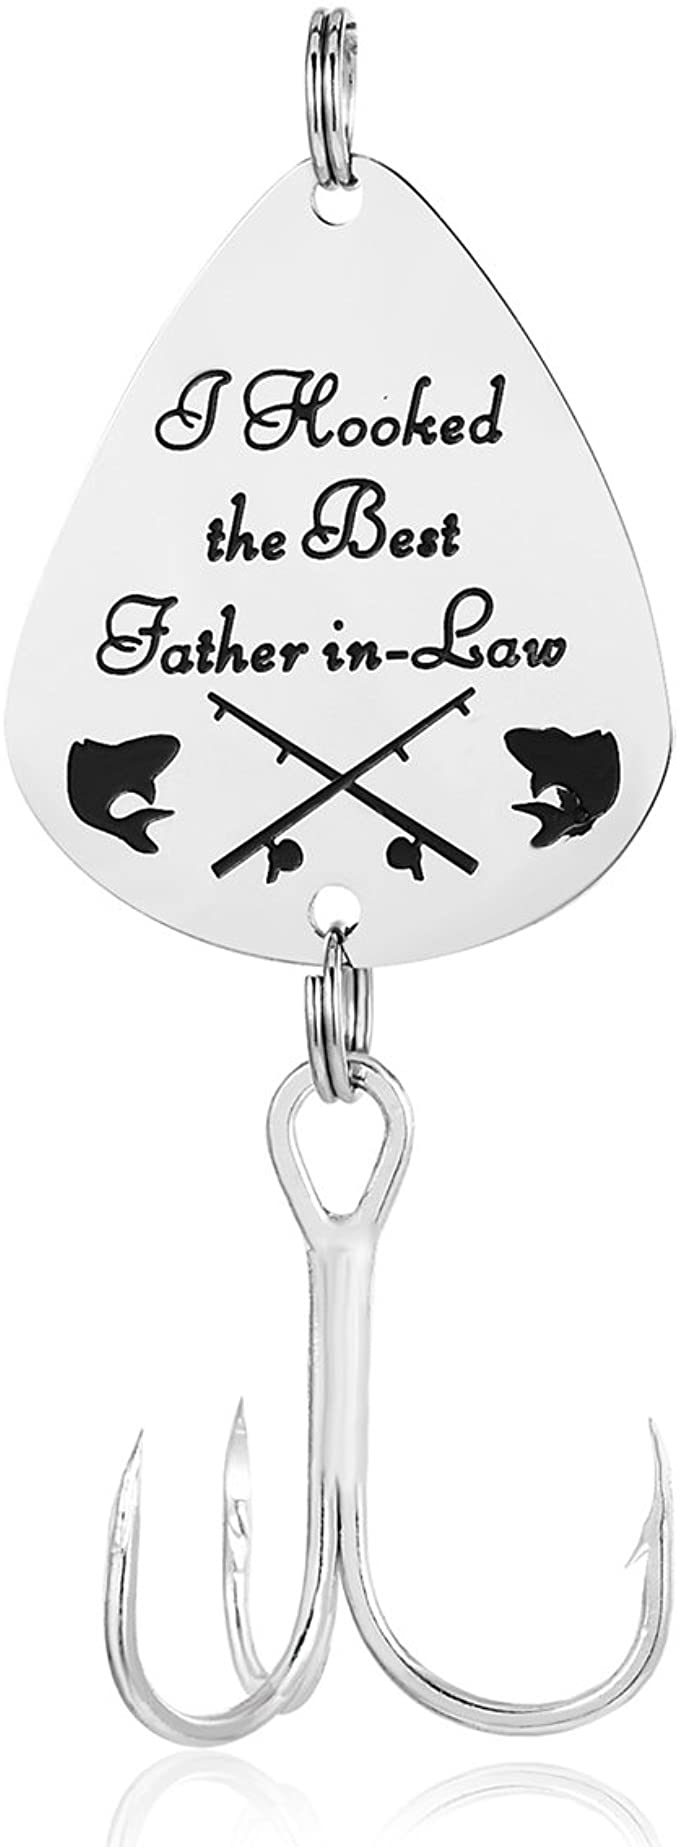 Fisherman Father in Law Gift